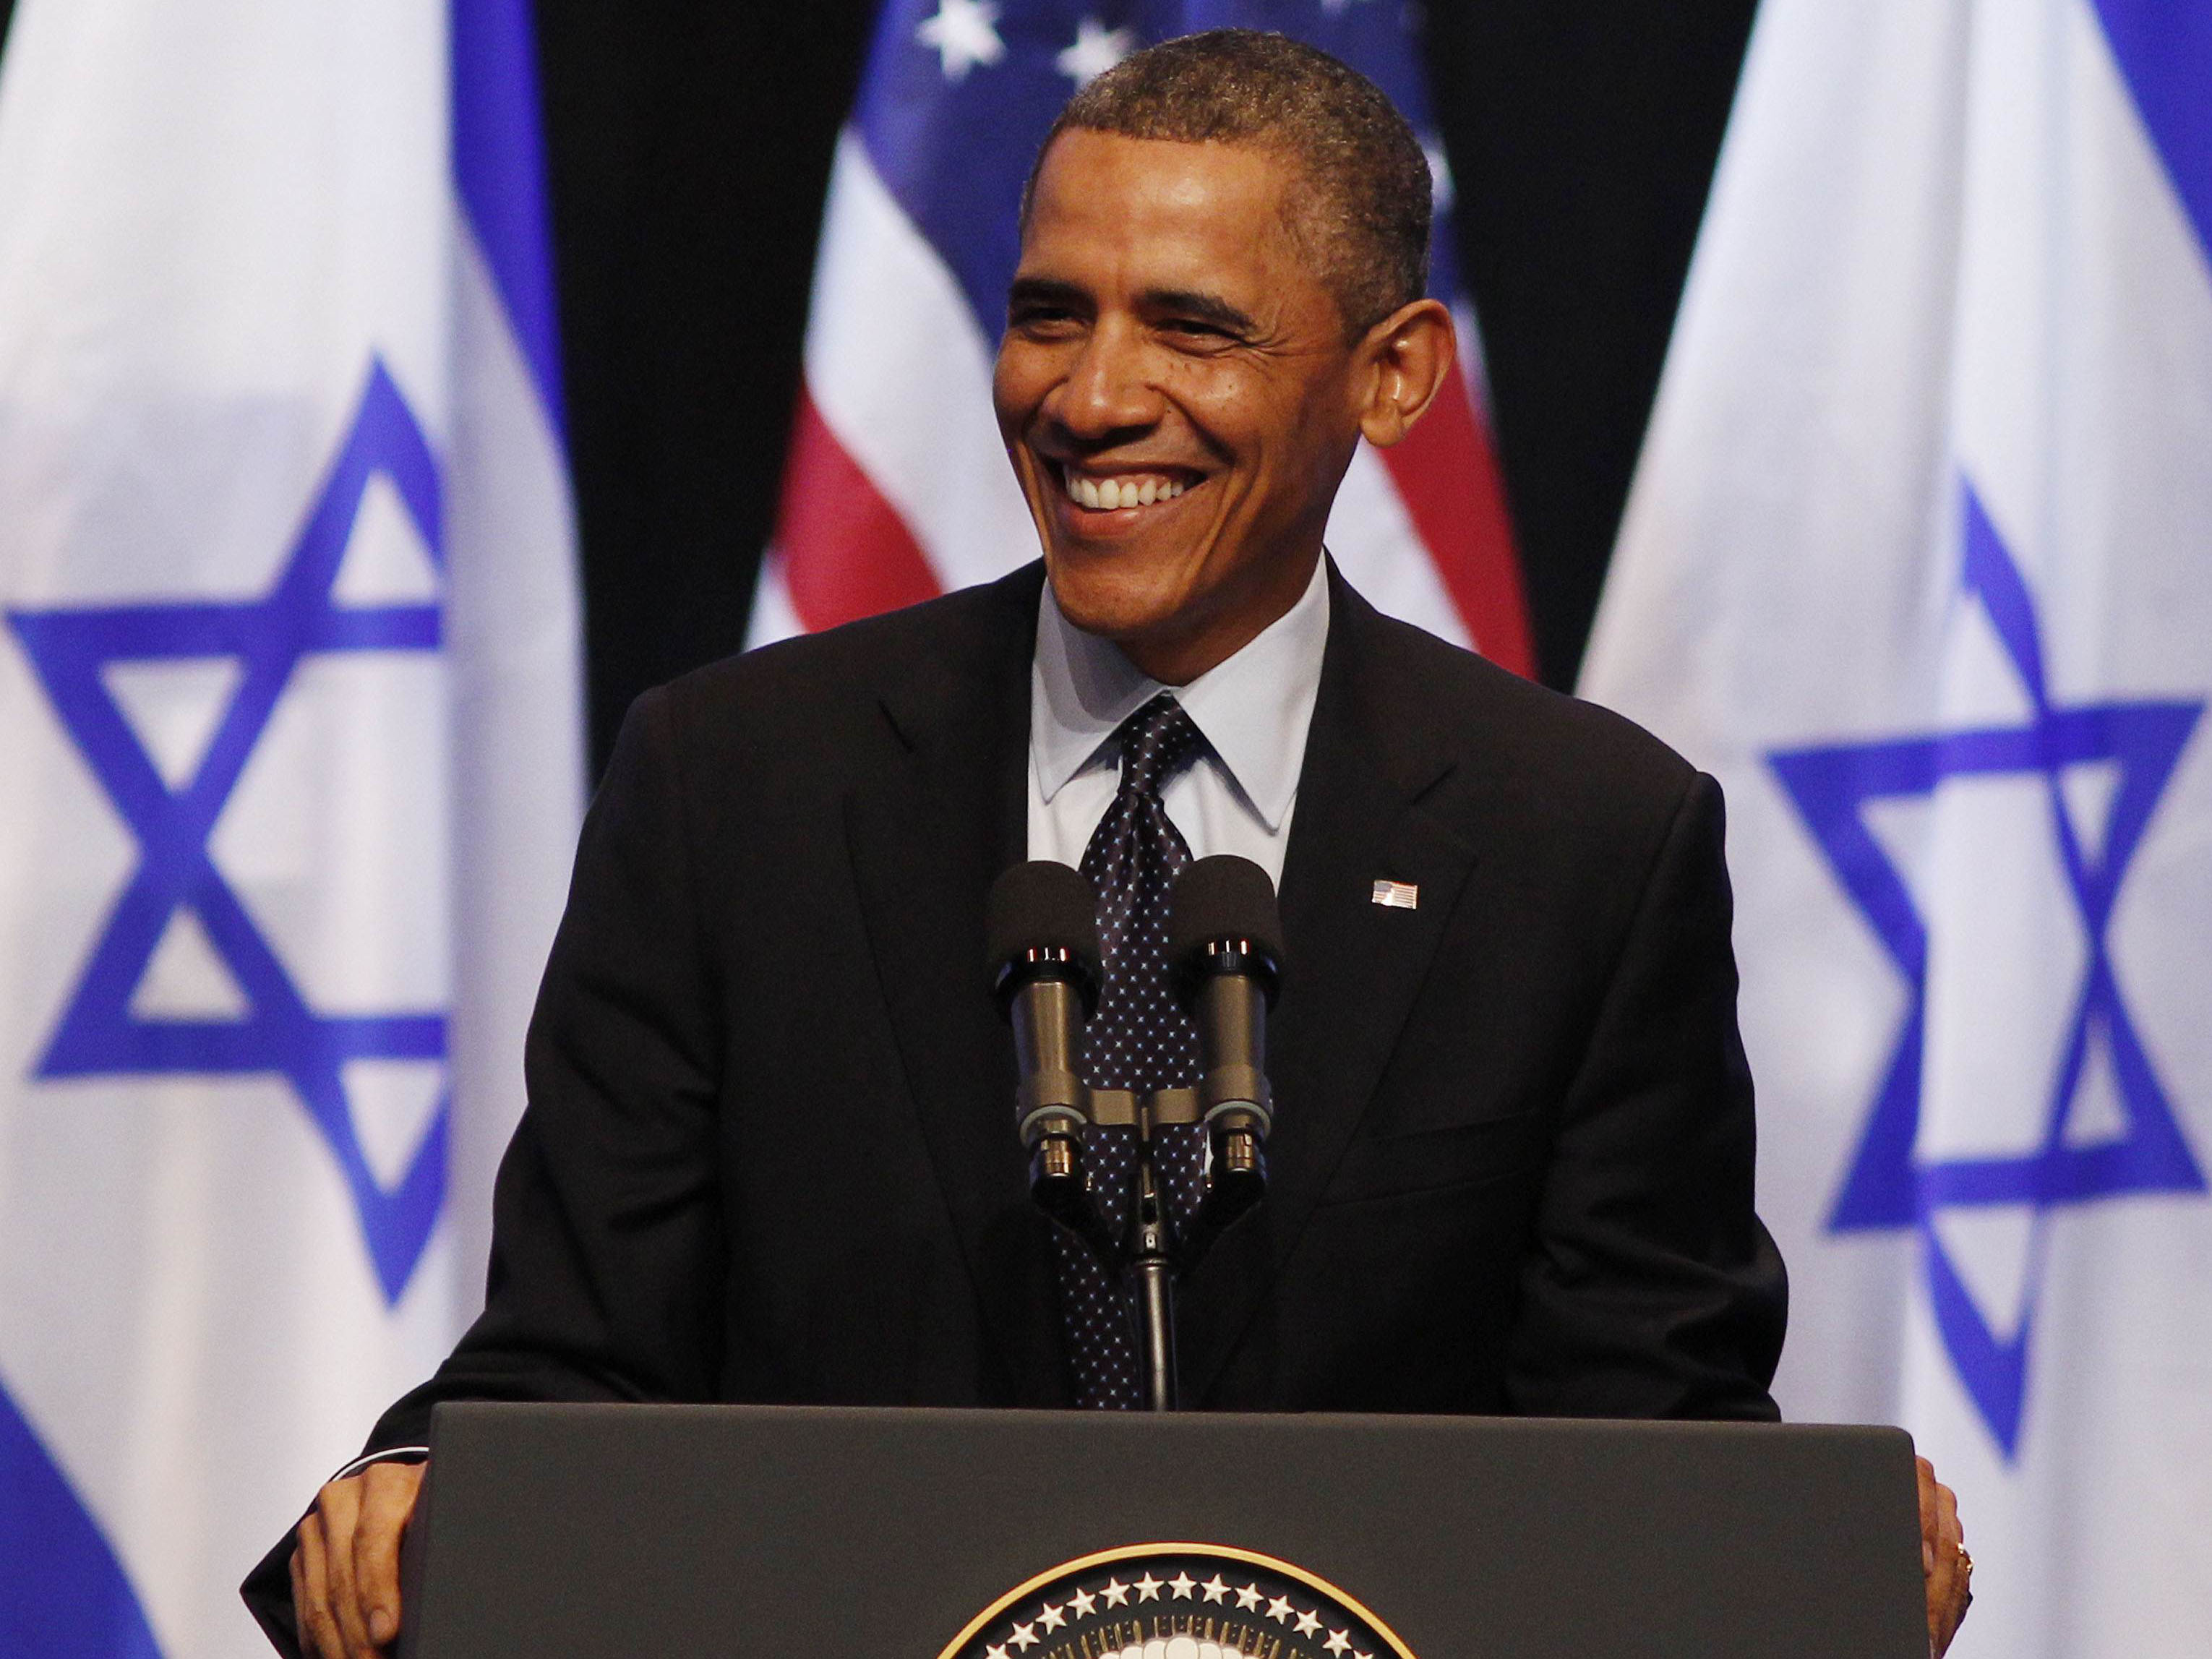 Obama to young Israelis: 'You are not alone'